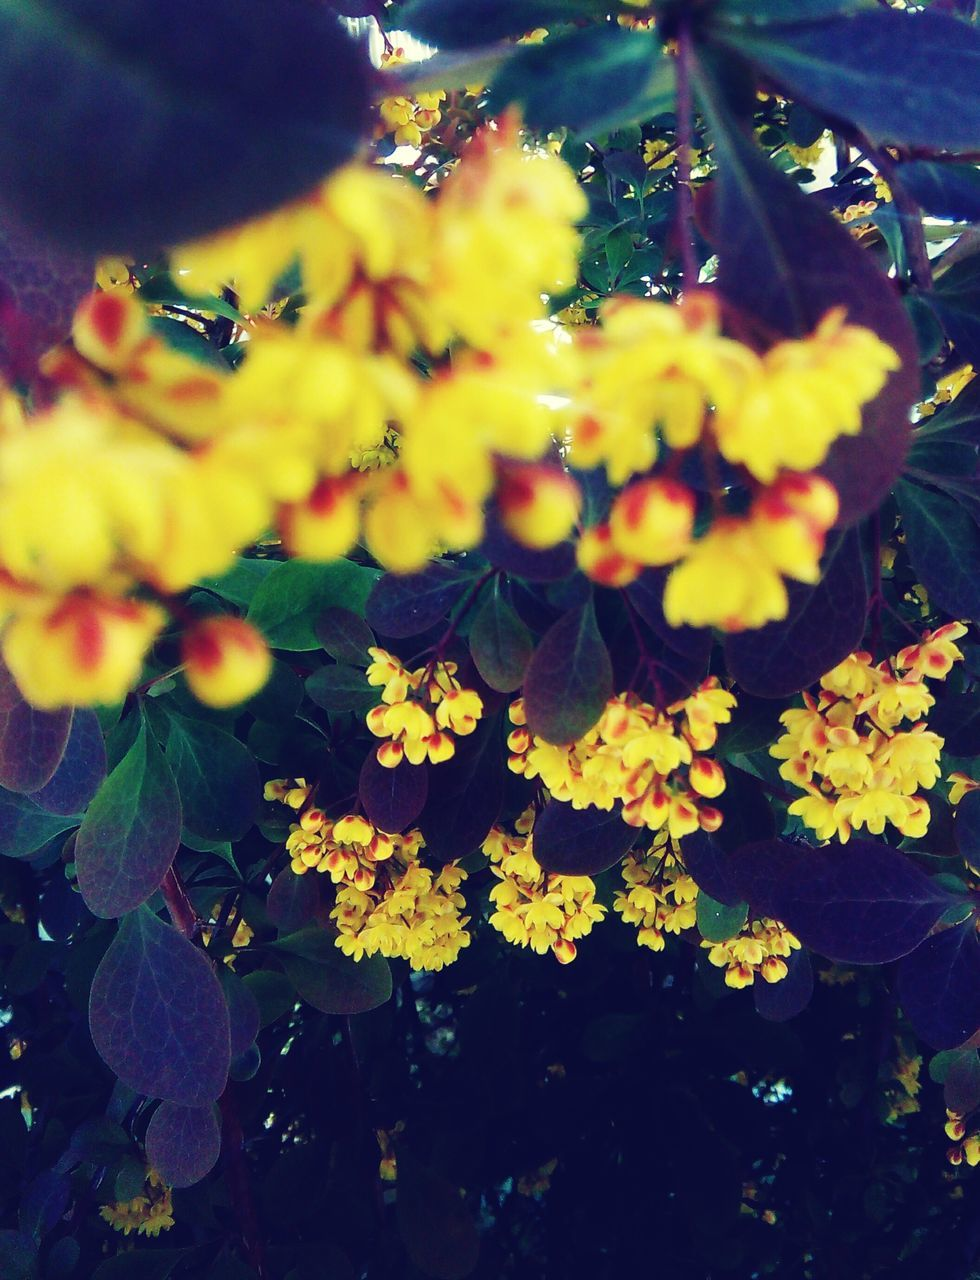 flower, growth, yellow, nature, plant, freshness, beauty in nature, fragility, spring, summer, no people, outdoors, close-up, day